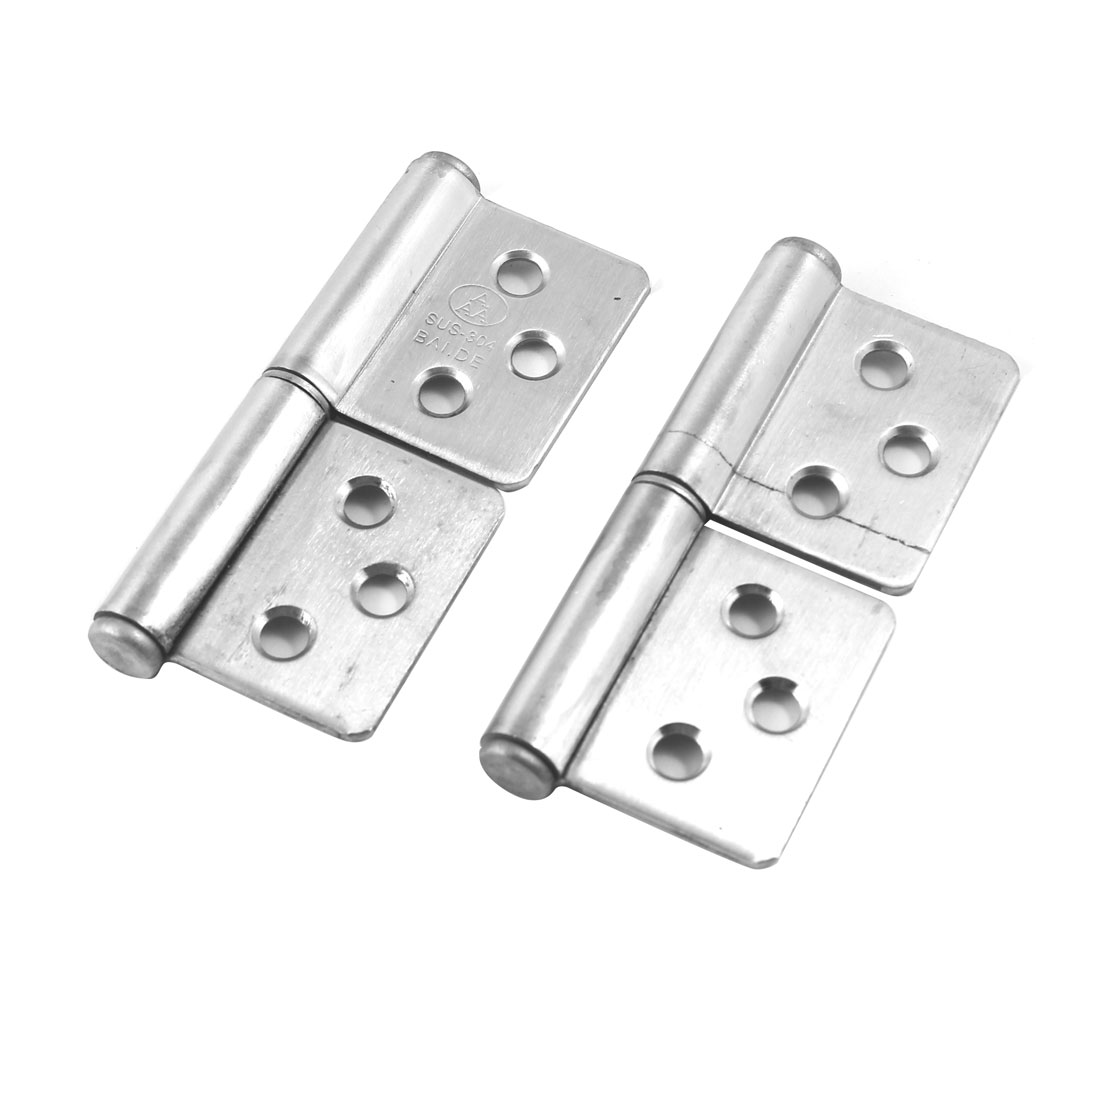 "2 Pcs 3"" Long Stainless Steel Two Leaves Door Window Flag Hinges"